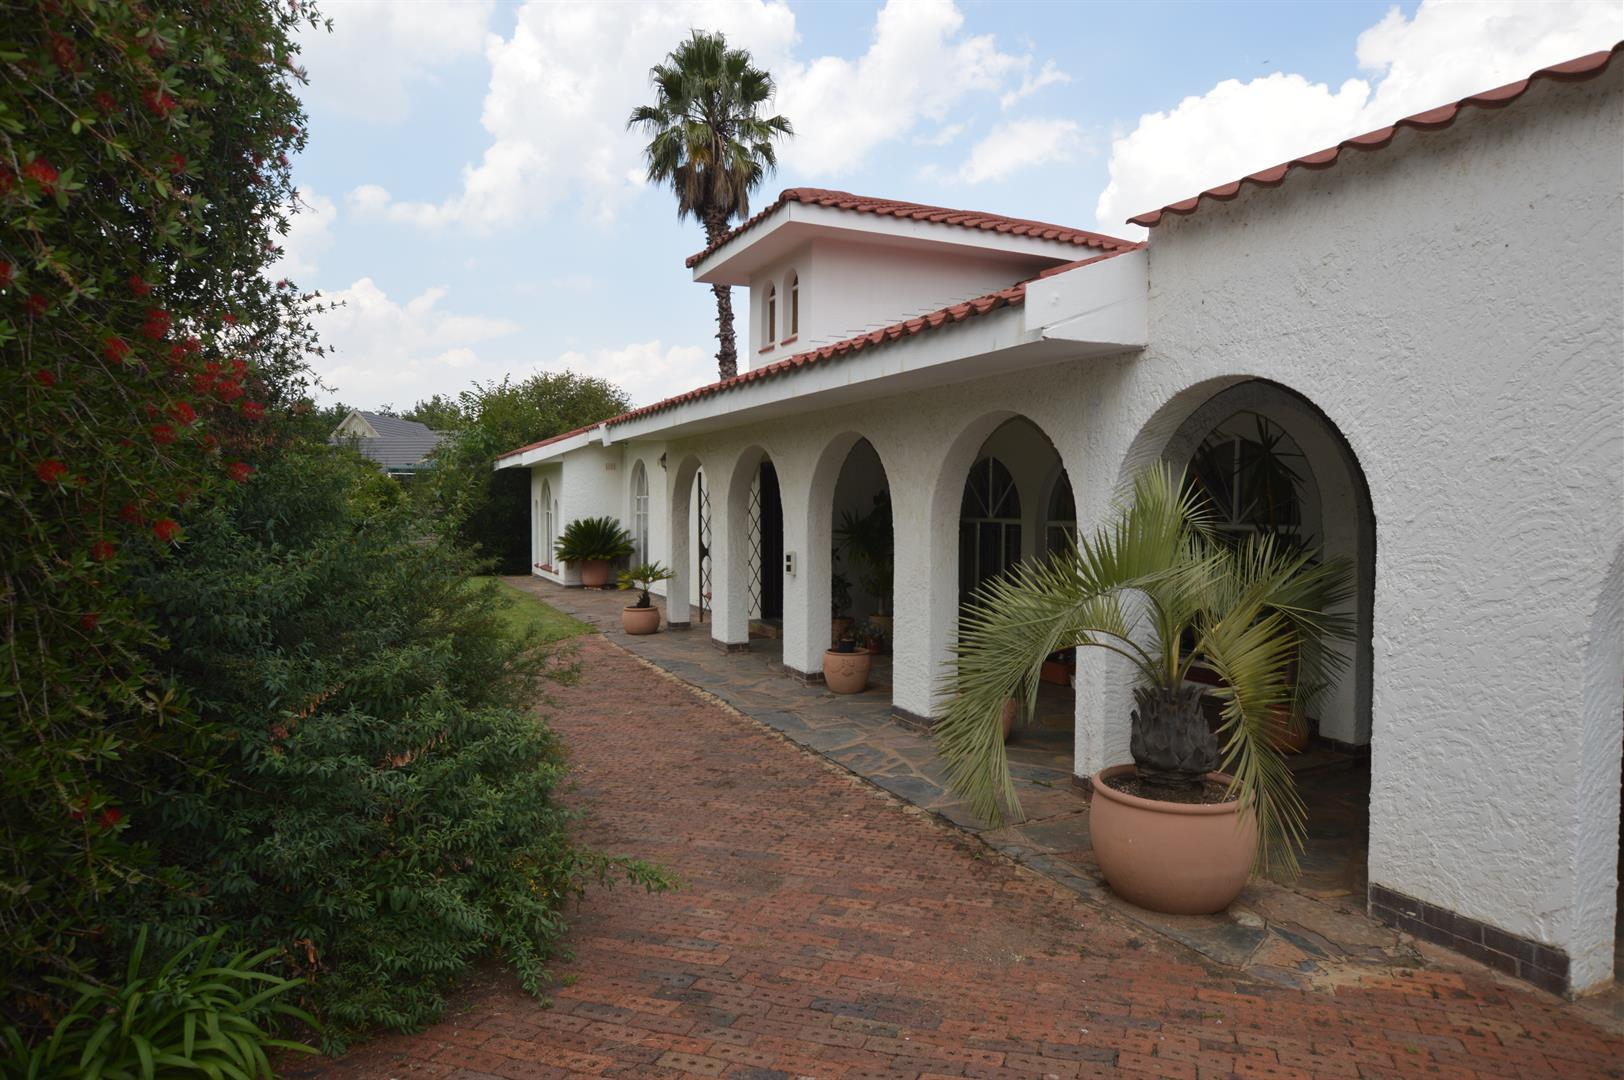 Vanderbijlpark Sw 5 for sale property. Ref No: 13443705. Picture no 1